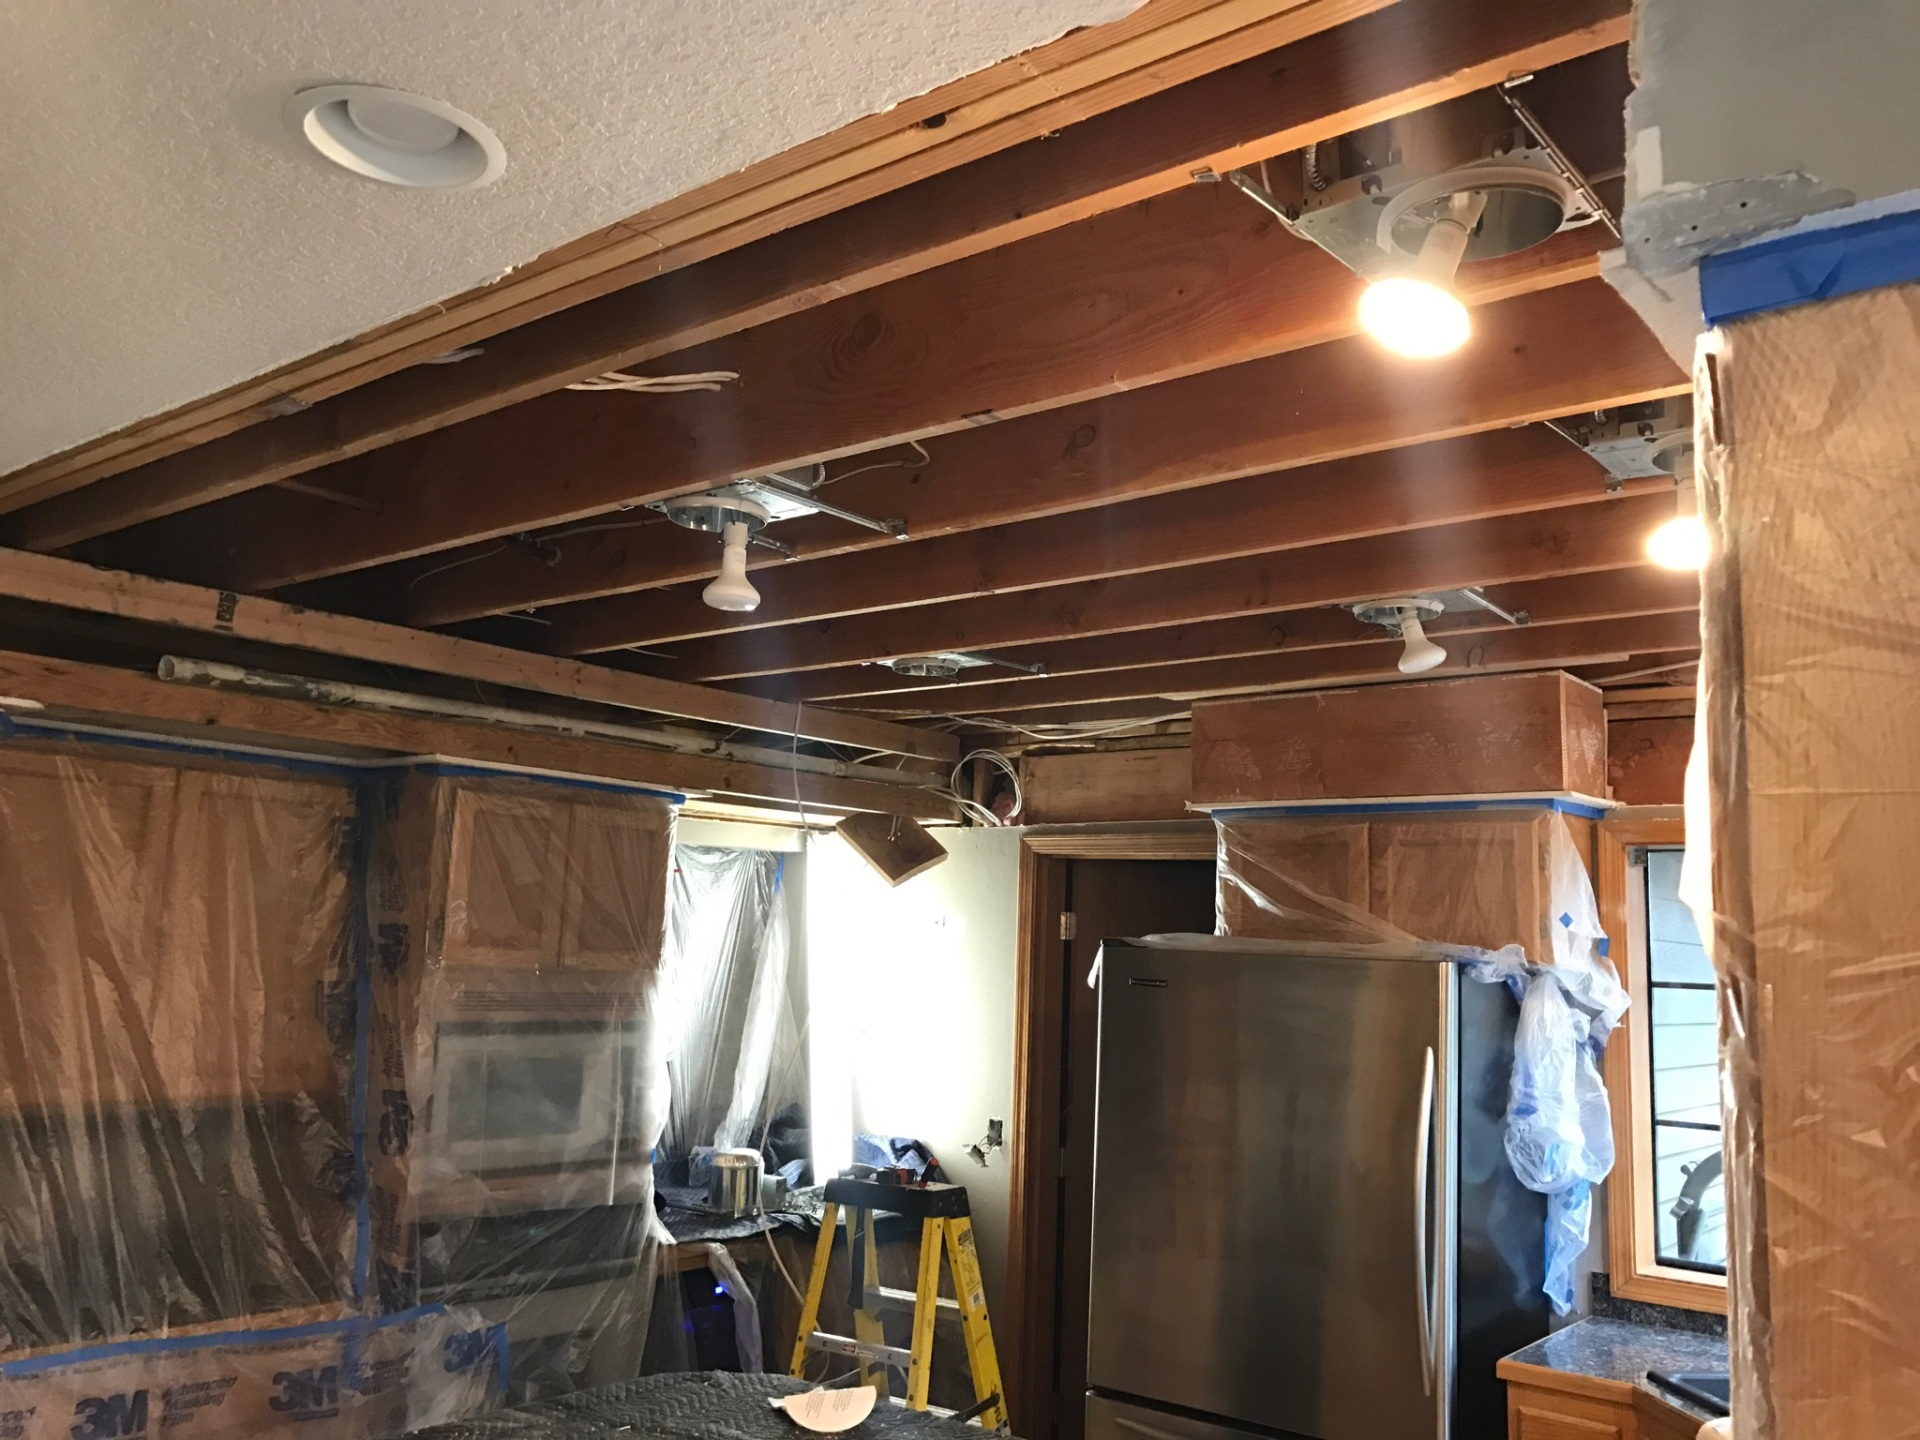 Kitchen Ceiling Remodel- During